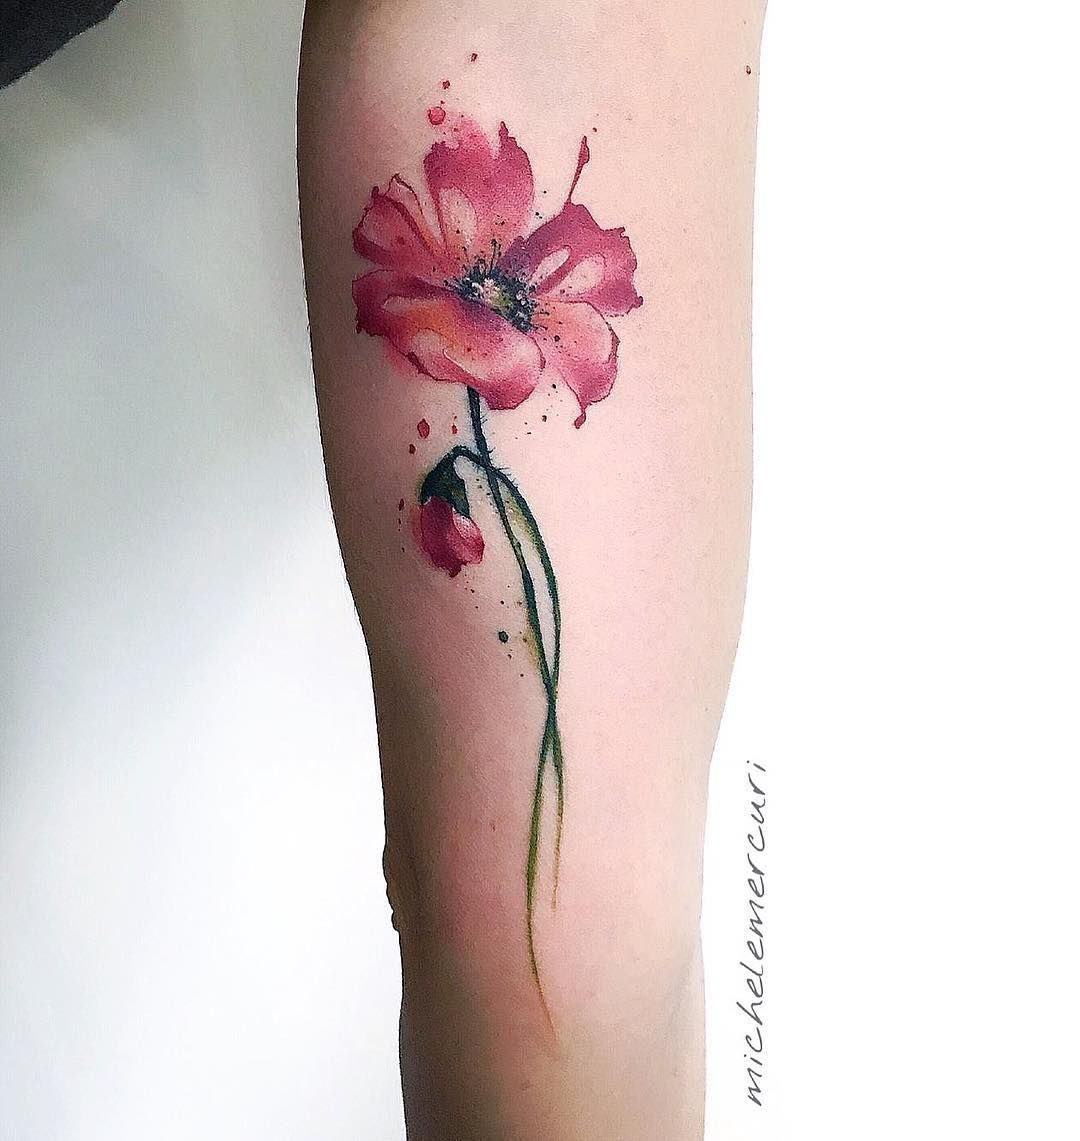 Account Suspended In 2020 Red Flower Tattoos Watercolor Tattoo Flower Poppies Tattoo